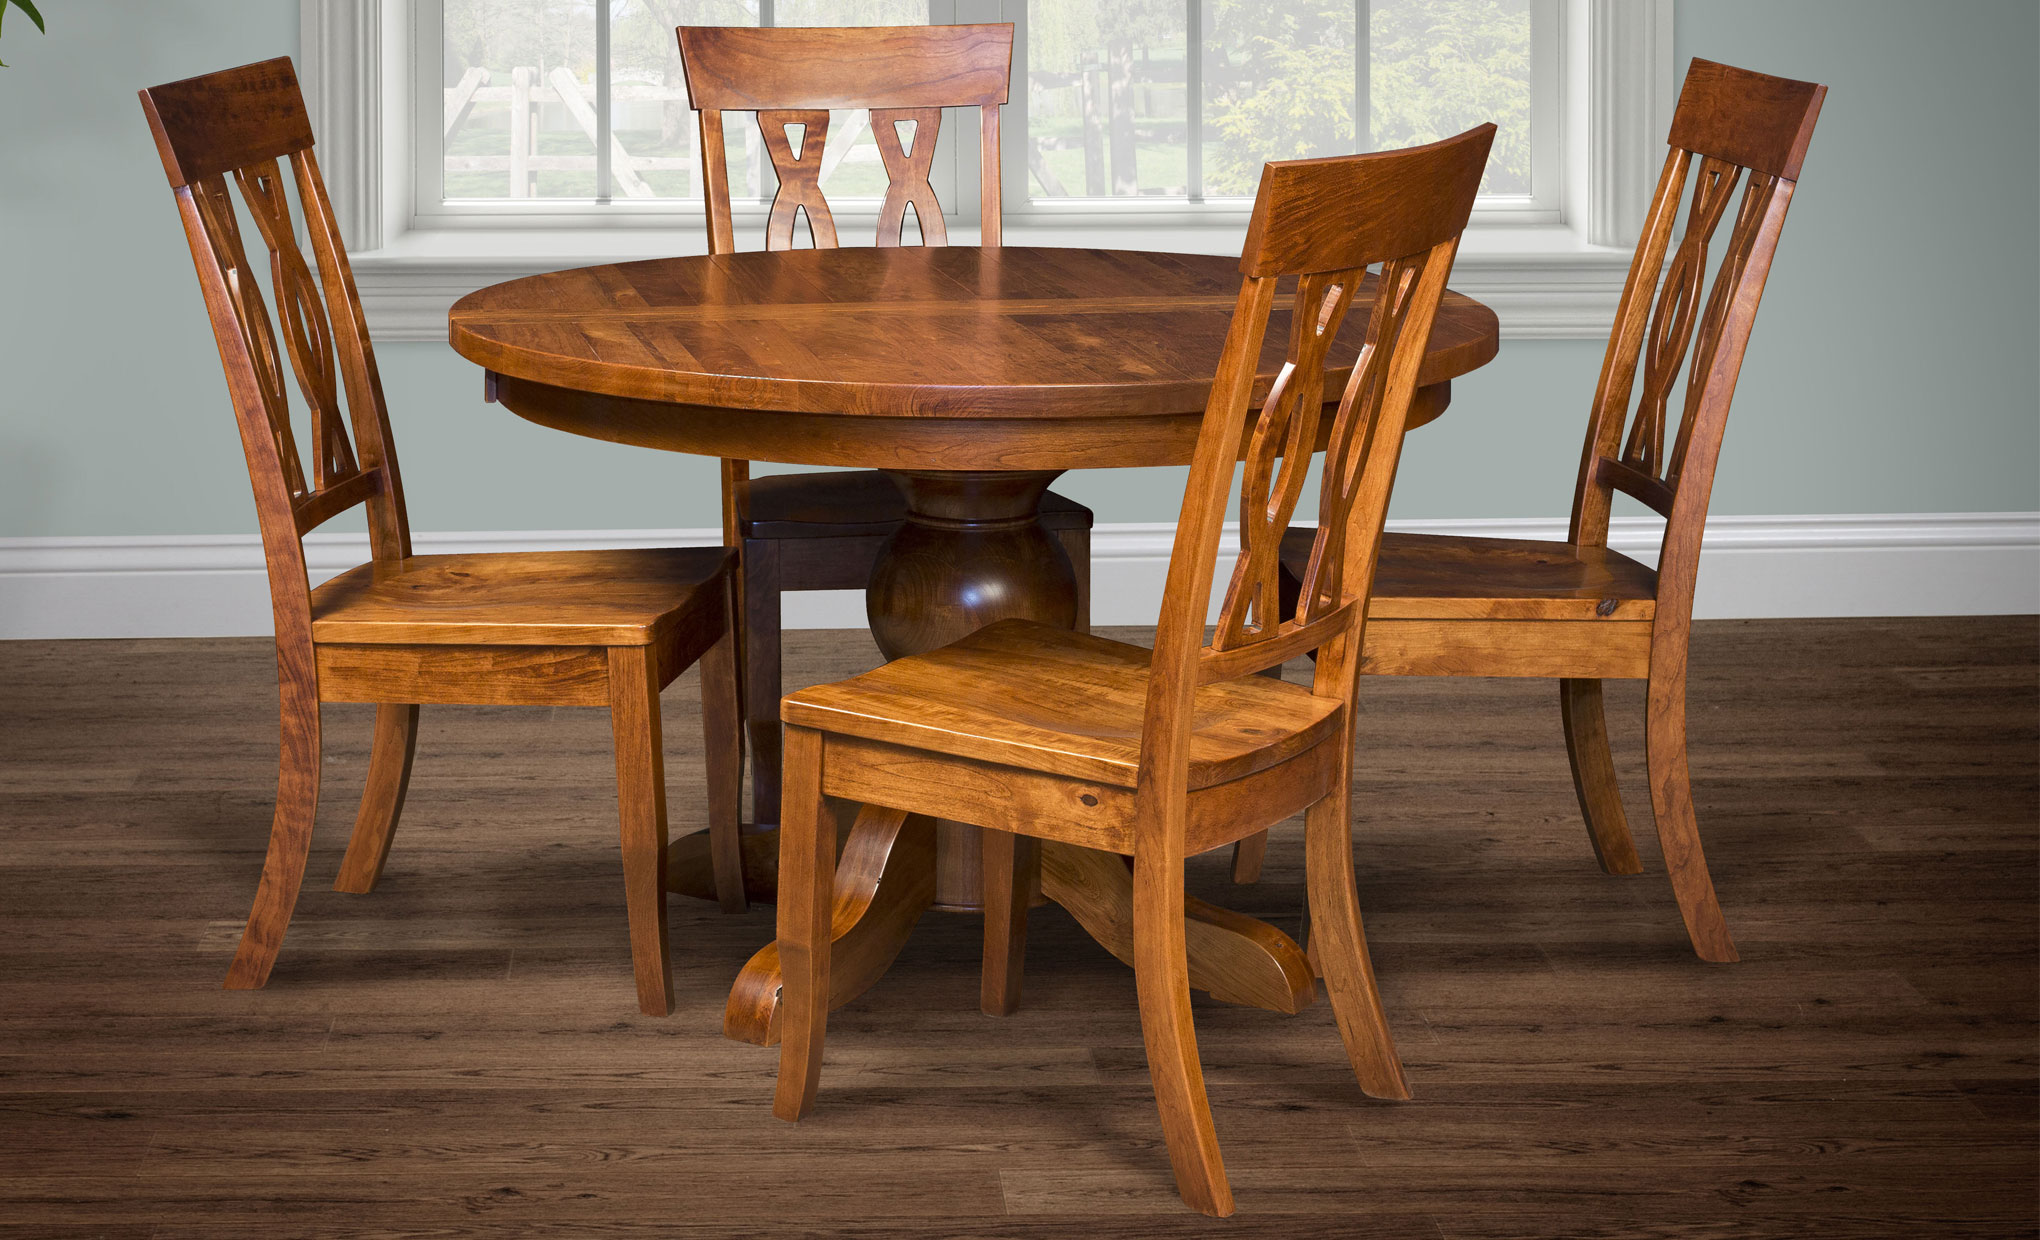 Gallery pictures for good quality dining chairs carson armchair amish - Carson Dining Room Set